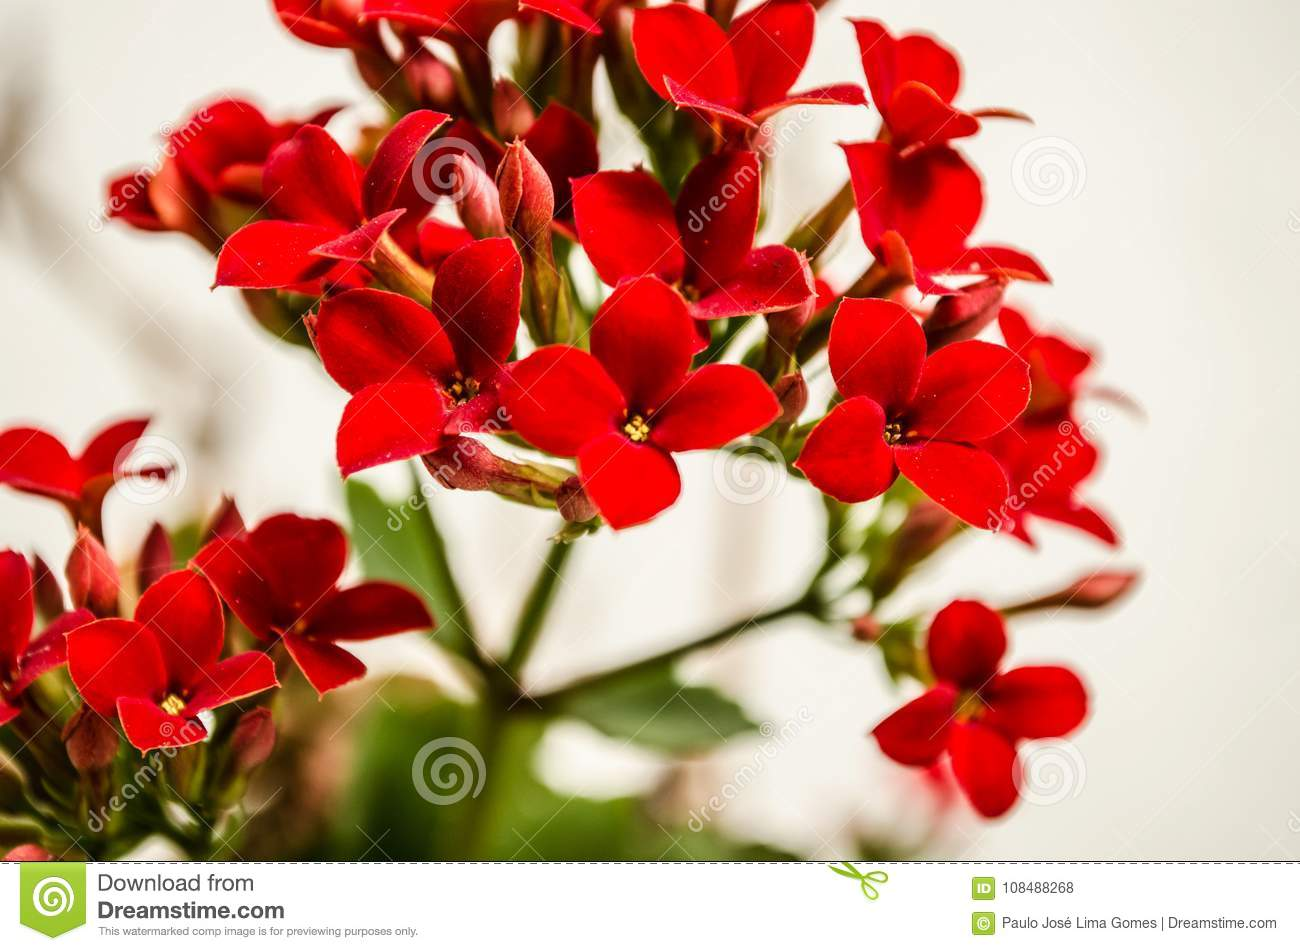 Kalanchoe - Flaming Katy, Christmas Kalanchoe Or Fortune ... on trees names, african violet names, flowers names, palm houseplants names, wildflowers names, tropical houseplants names,